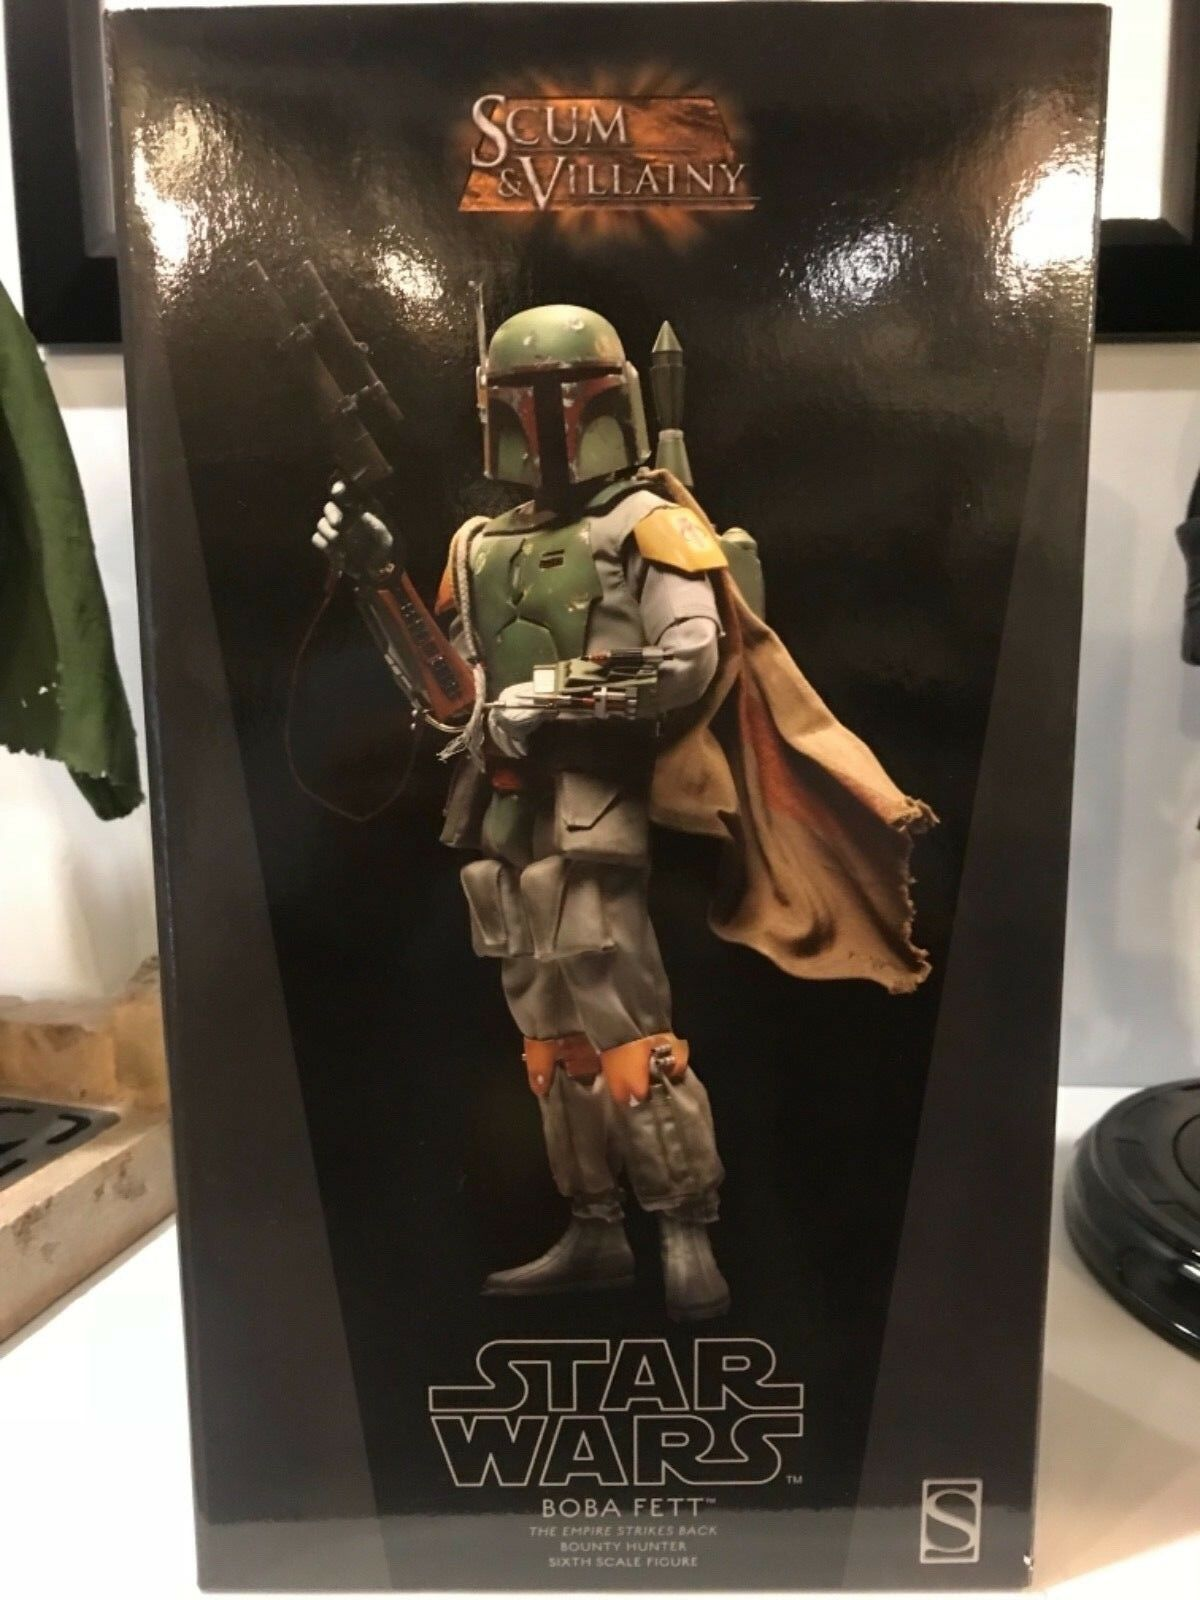 Sideshow Collectibles Scum Of Villainy Boba Fett Exclusive Figure